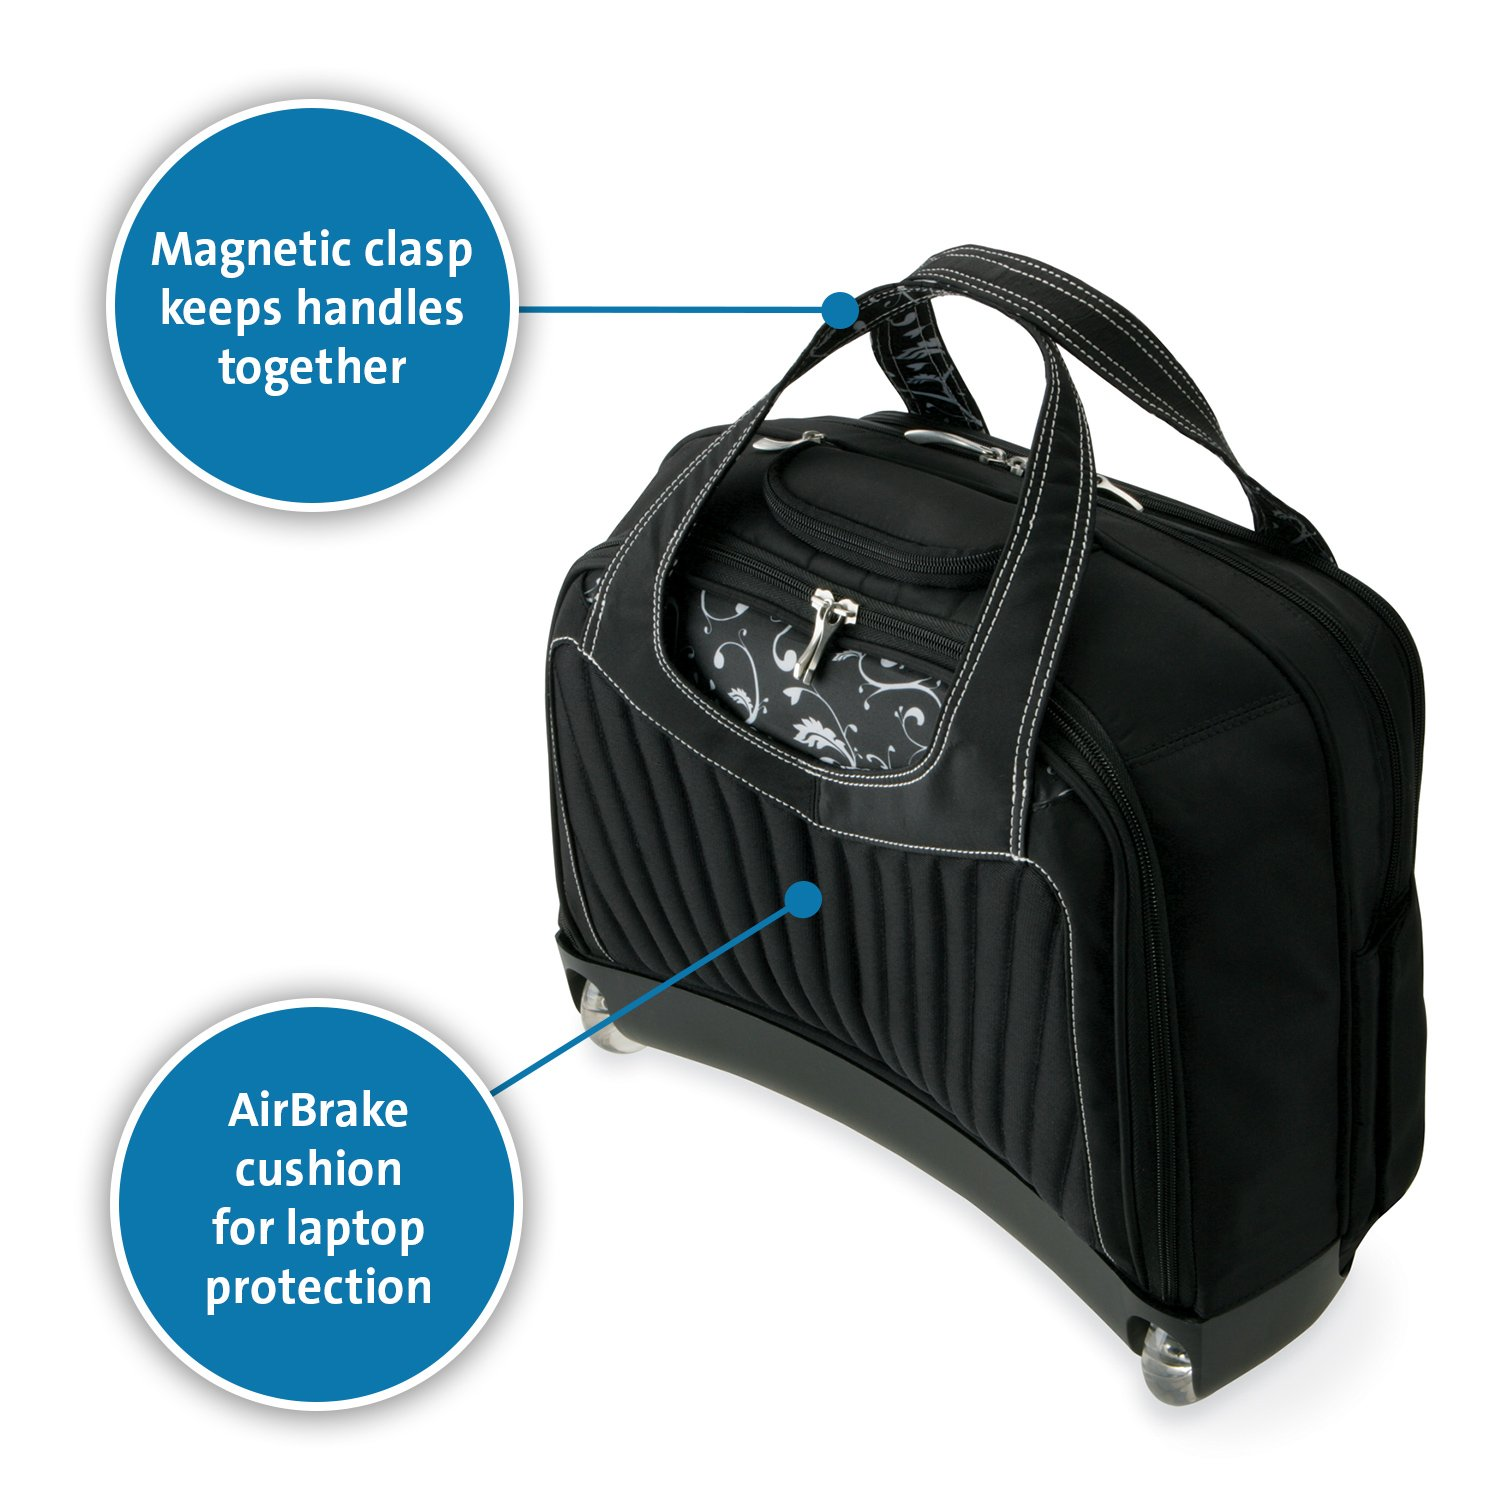 Kensington K62533US Contour Balance Notebook Roller Bag in Onyx, Fits Most 15-Inch Notebooks by Kensington (Image #3)